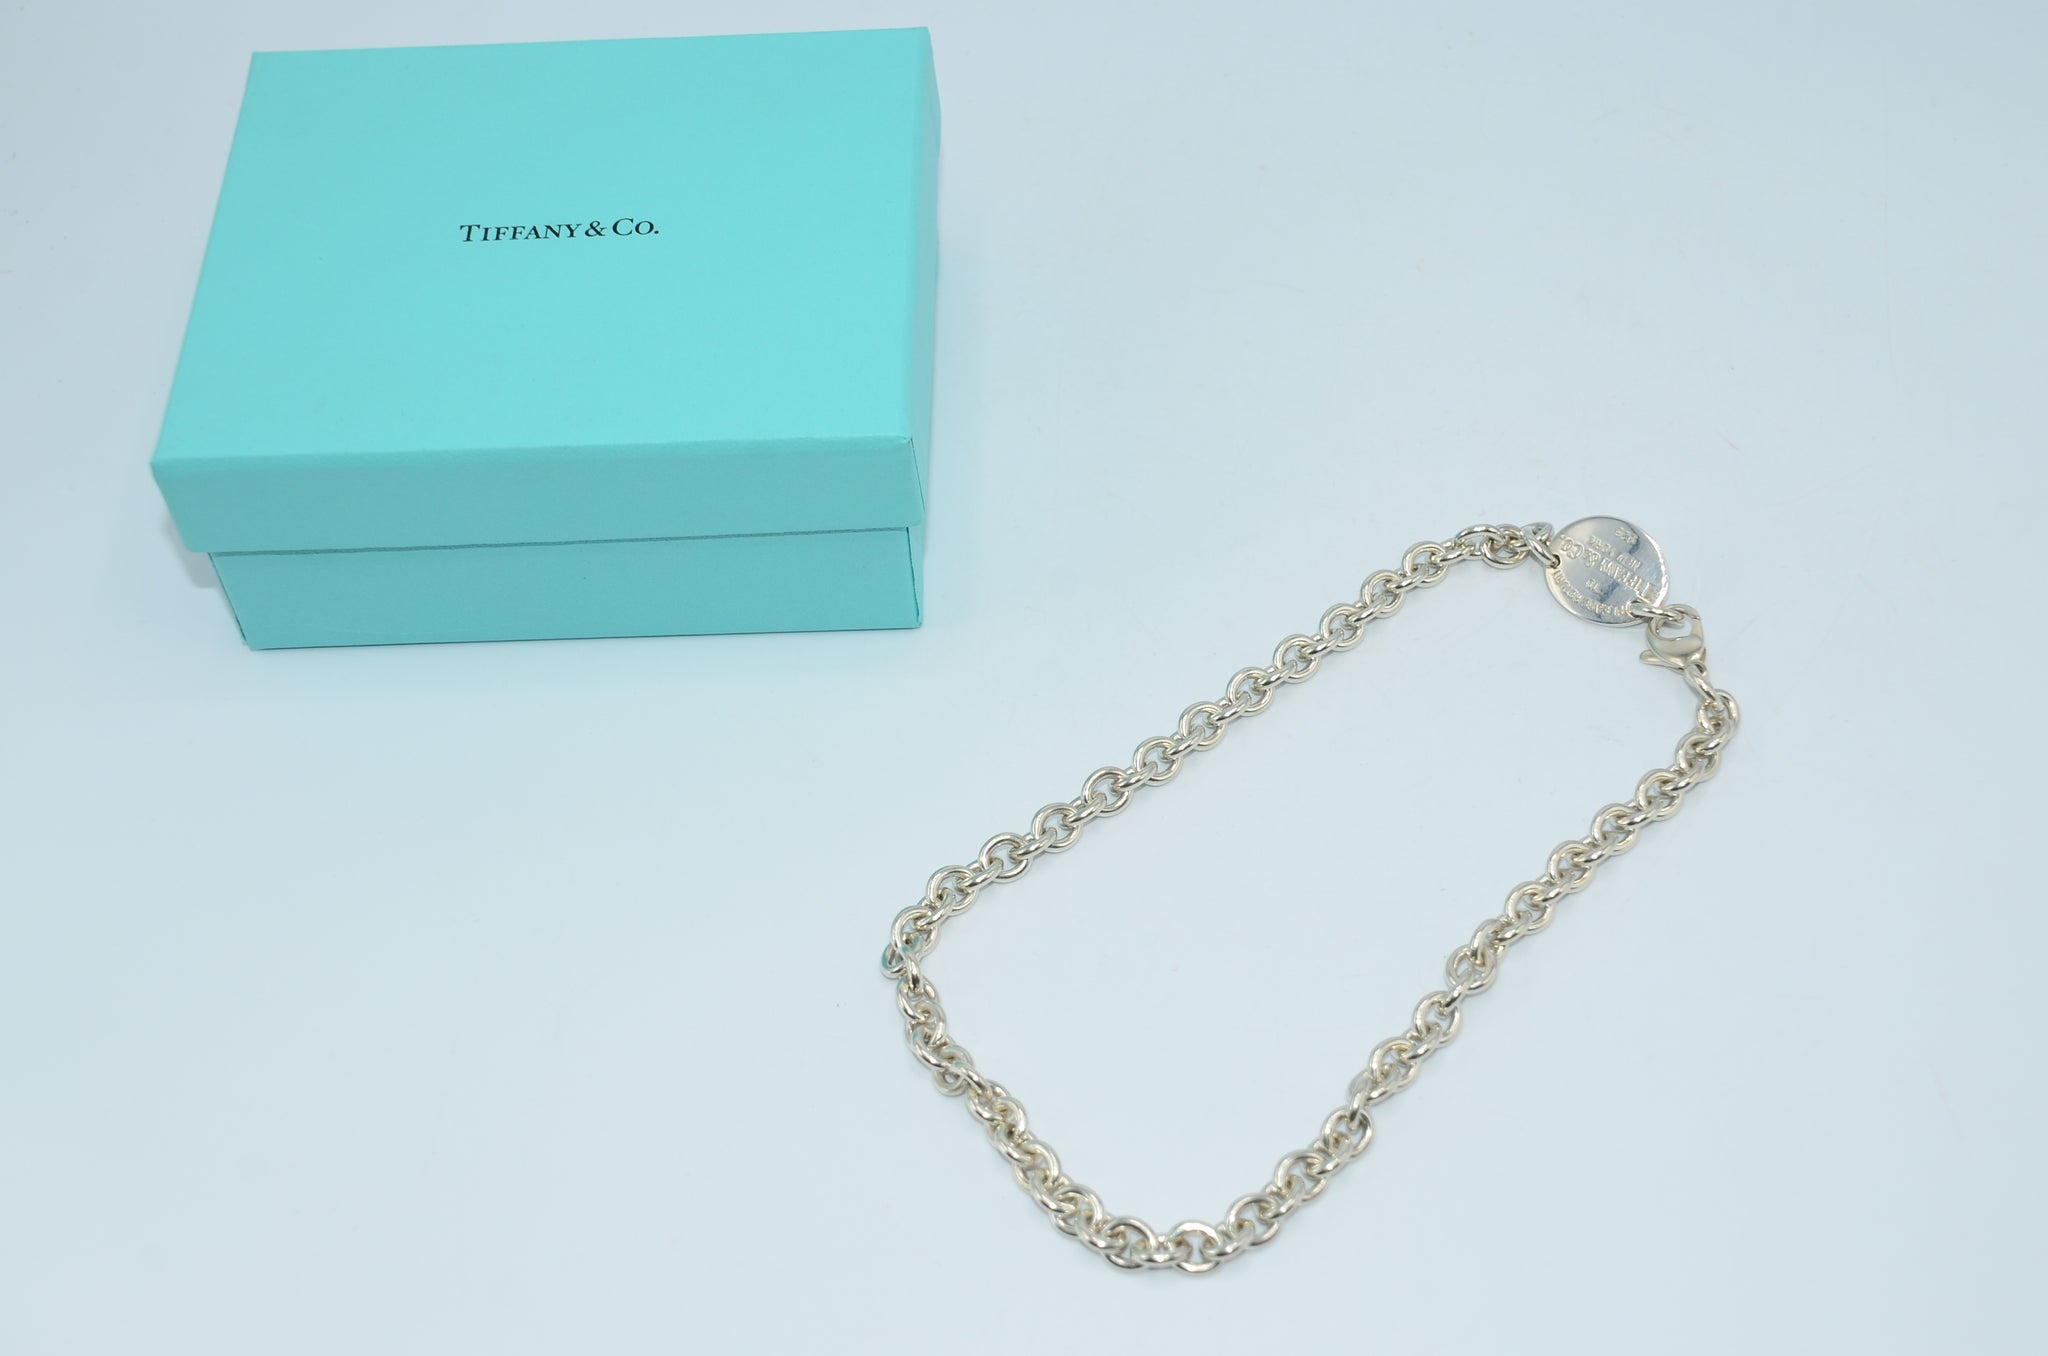 Tiffany & Co  Necklace - Iconics Preloved Luxury